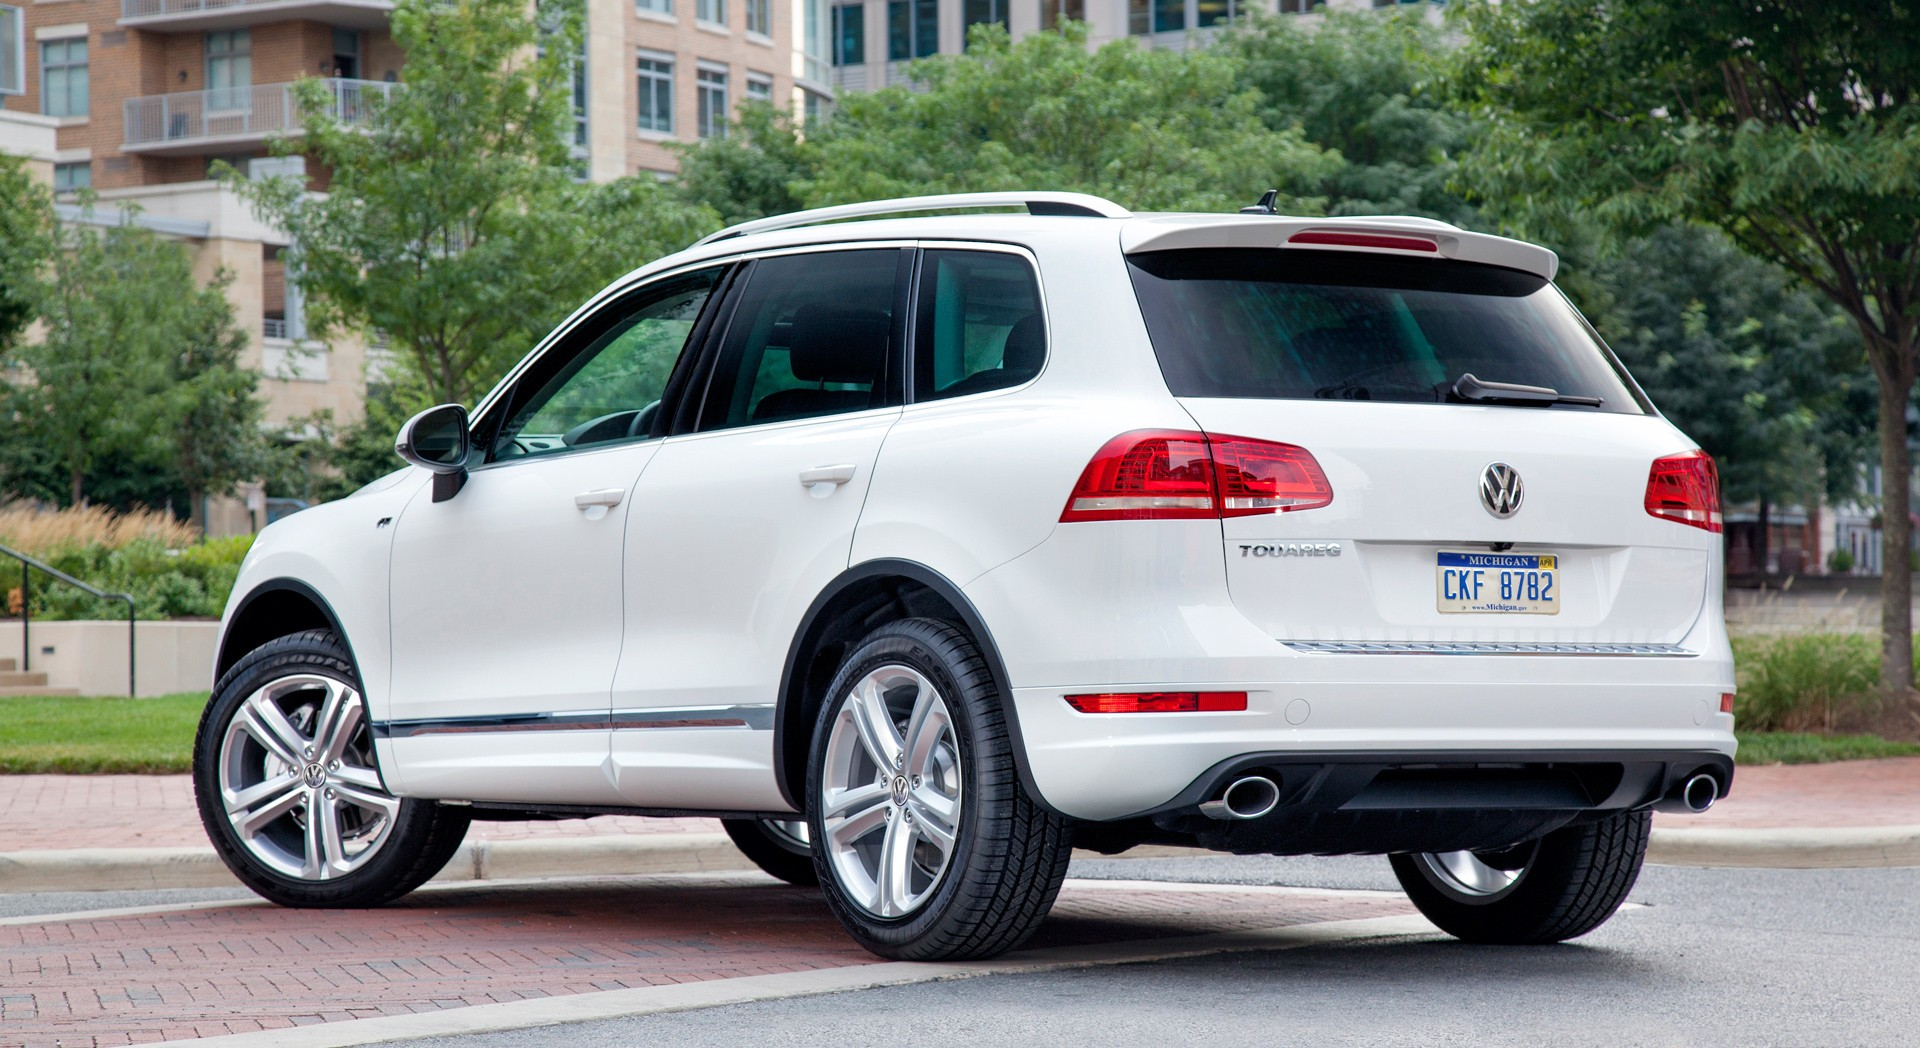 Volkswagen Touareg Wallpapers Archives Hd Desktop